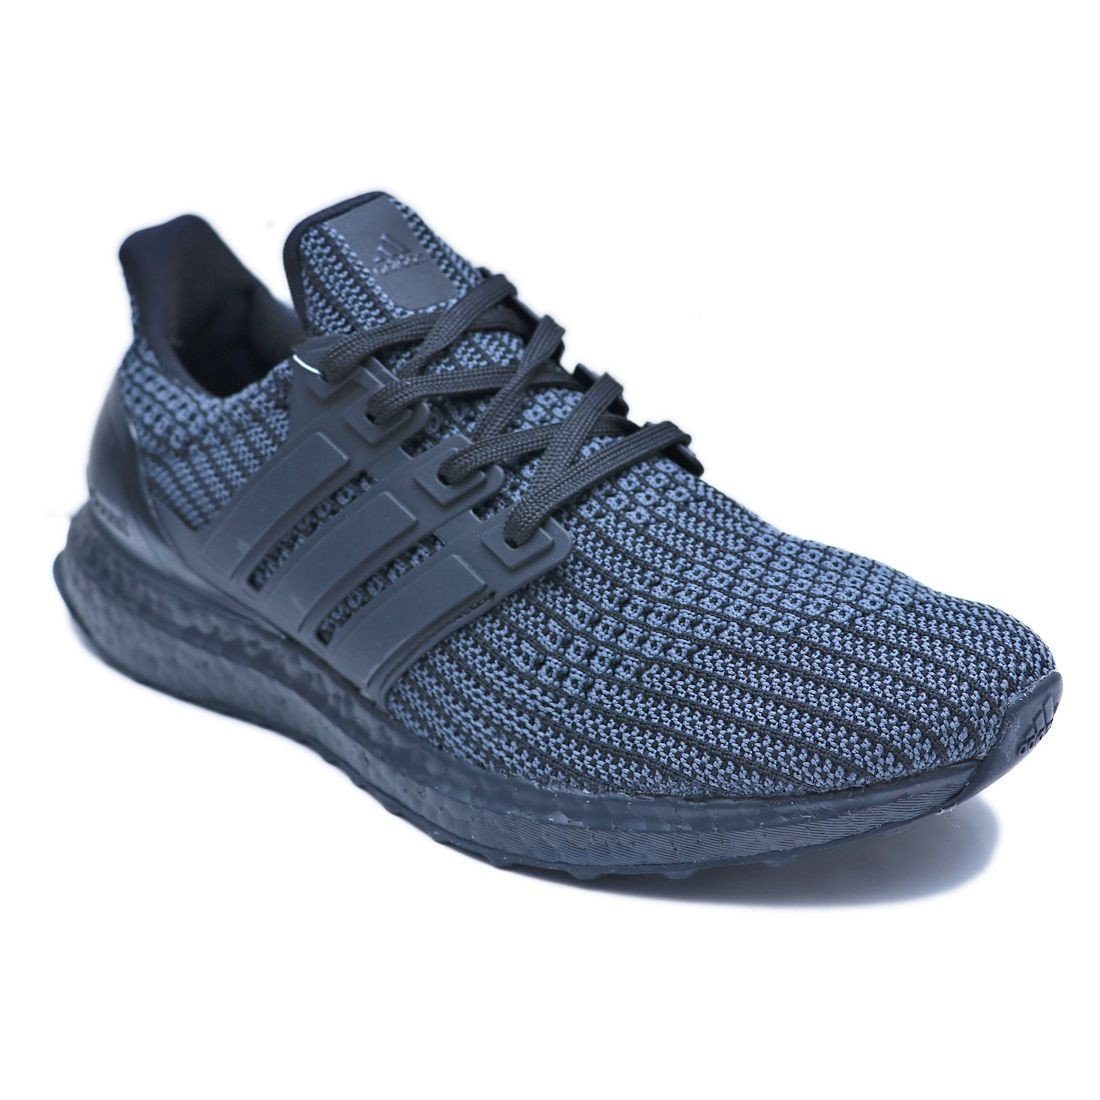 3924aa12c0d4e0 Adidas UltraBoost 4.0 Low Black Running Shoes - Buy Adidas UltraBoost 4.0  Low Black Running Shoes Online at Best Prices in India on Snapdeal